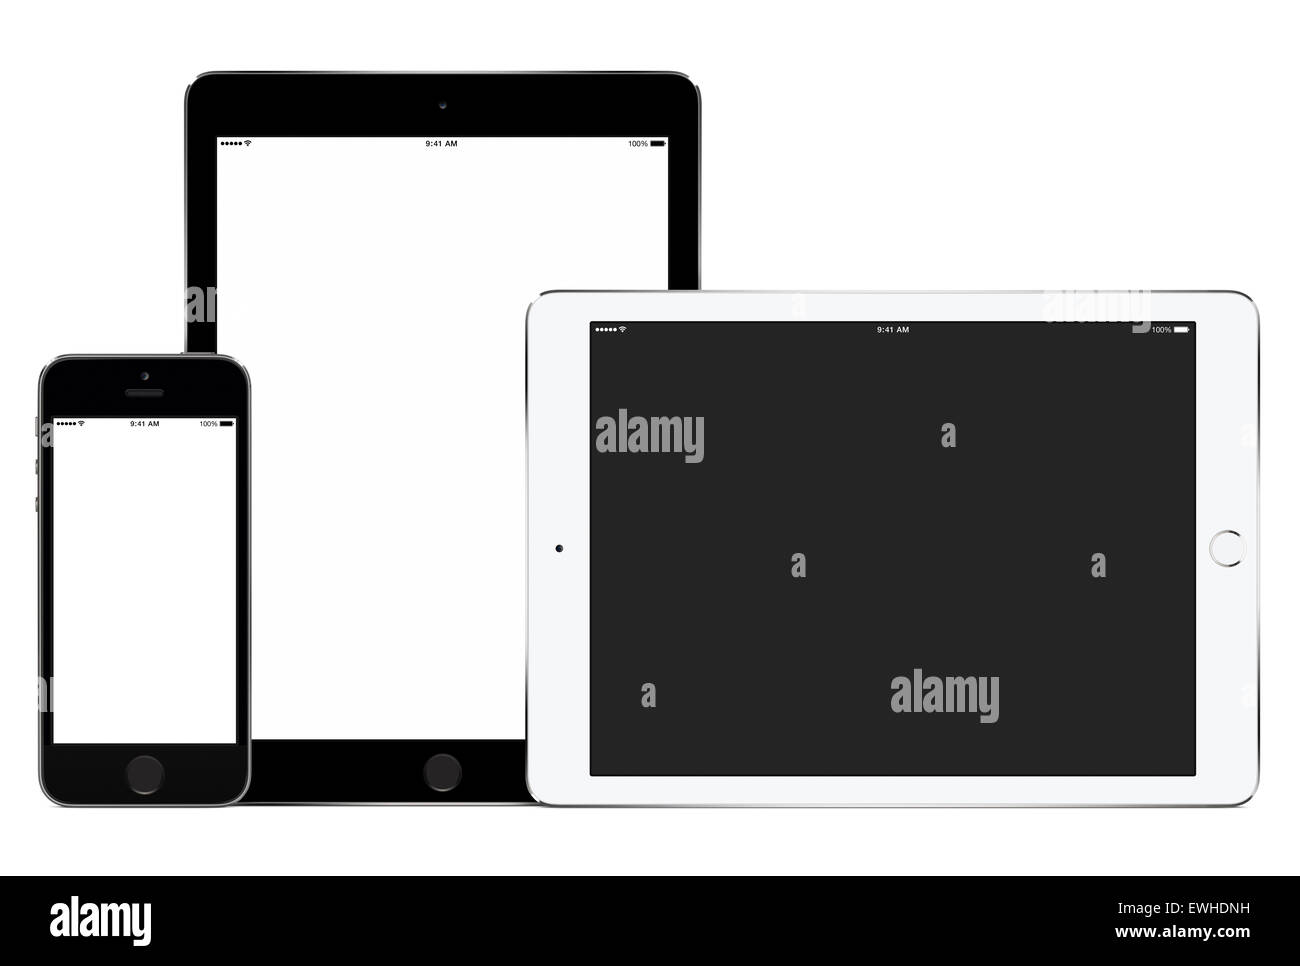 Mockup of smartphone and two tablet computers in portrait and landscape orientation for responsive design presentation. - Stock Image